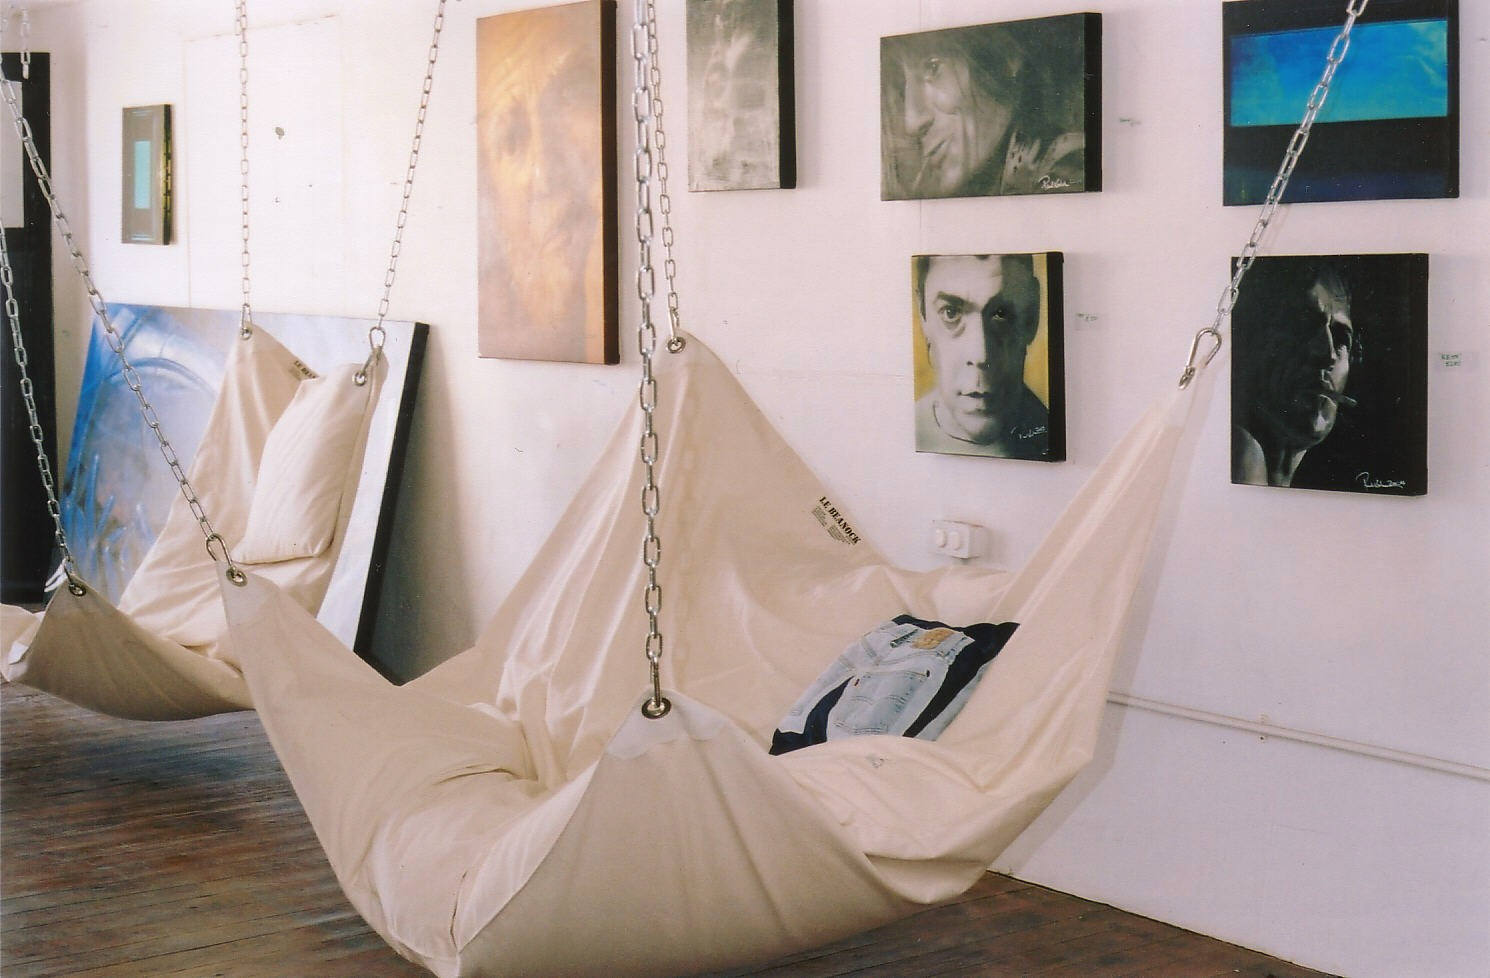 Cool indoor hammock le beanock digsdigs - Indoor hammock hanging ideas ...